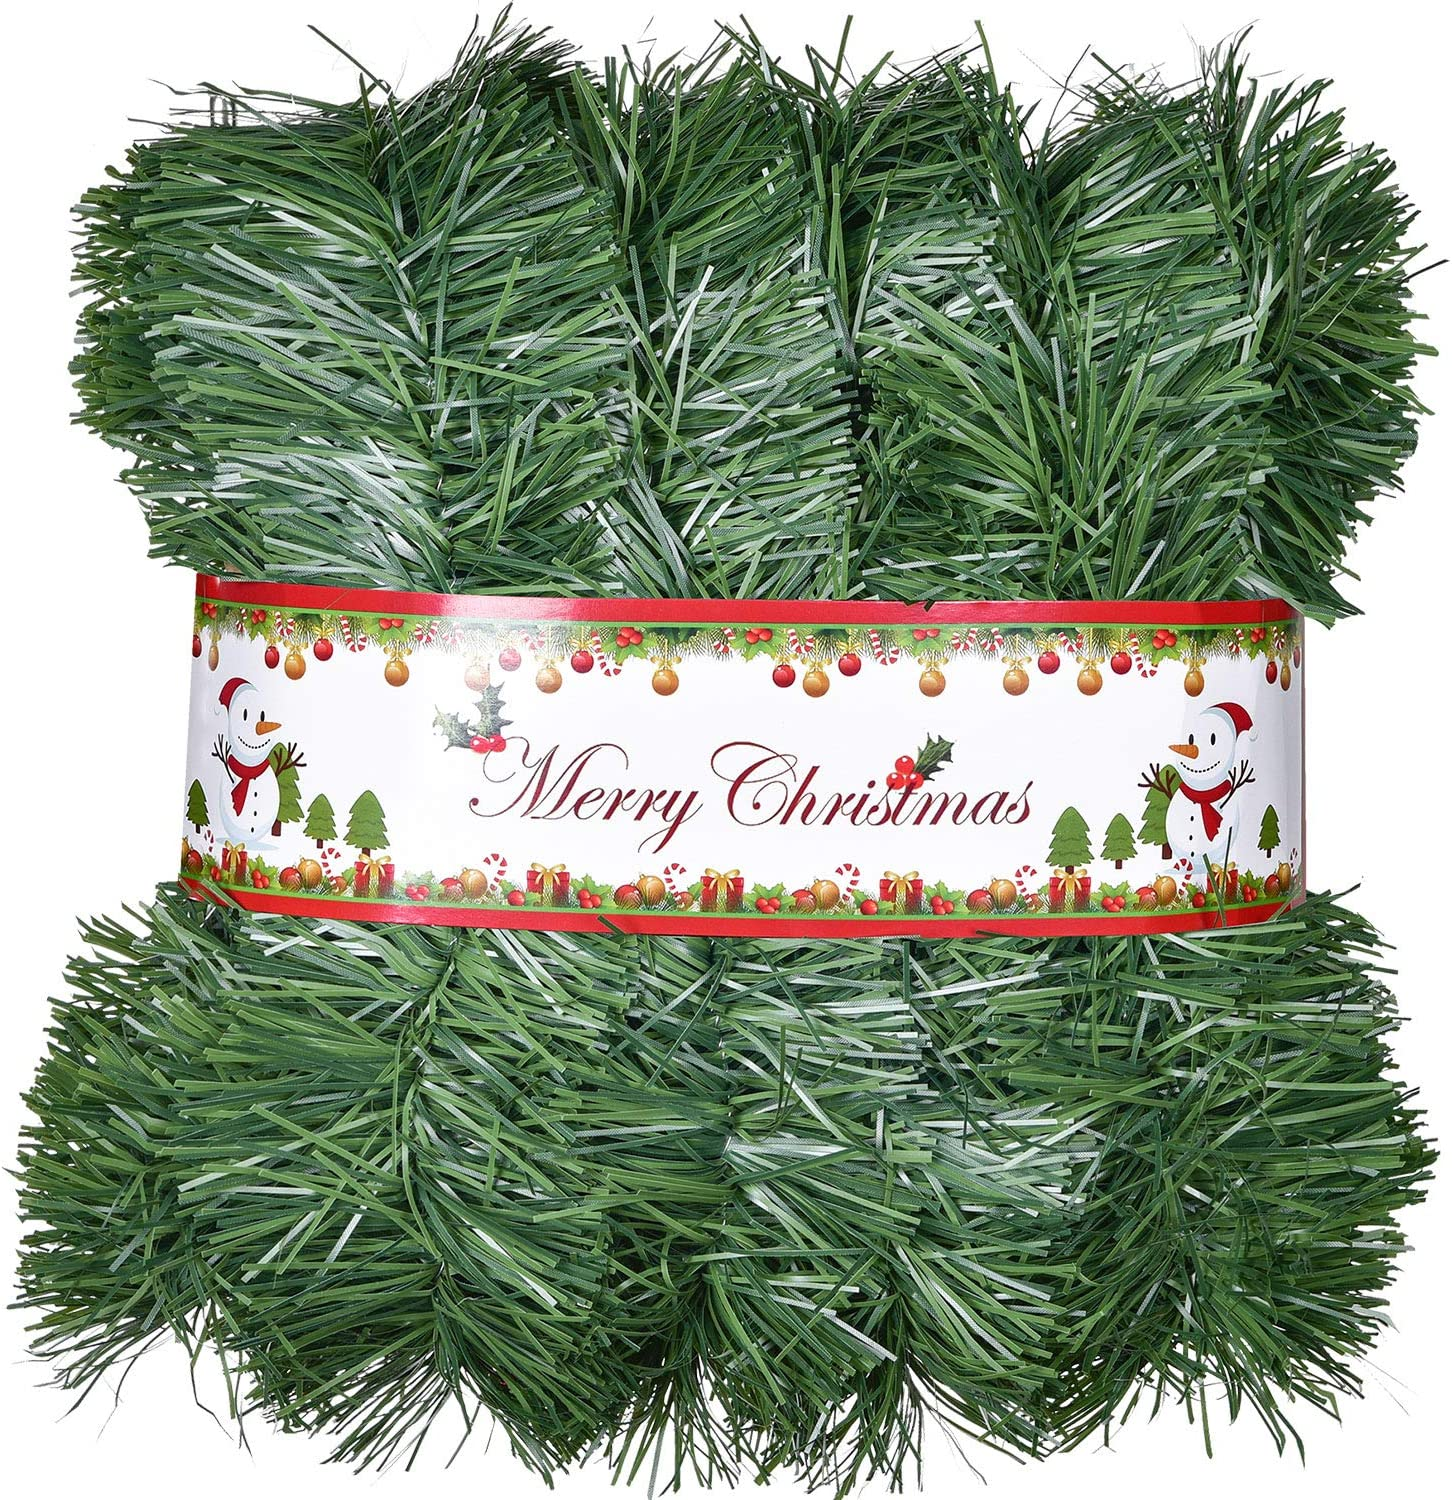 Artiflr 50 Ft Christmas Garland, Artificial Pine Garland Holiday Decor for Outdoor or Indoor Home Garden Artificial Green Greenery, or Fireplaces Holiday Party Decorations